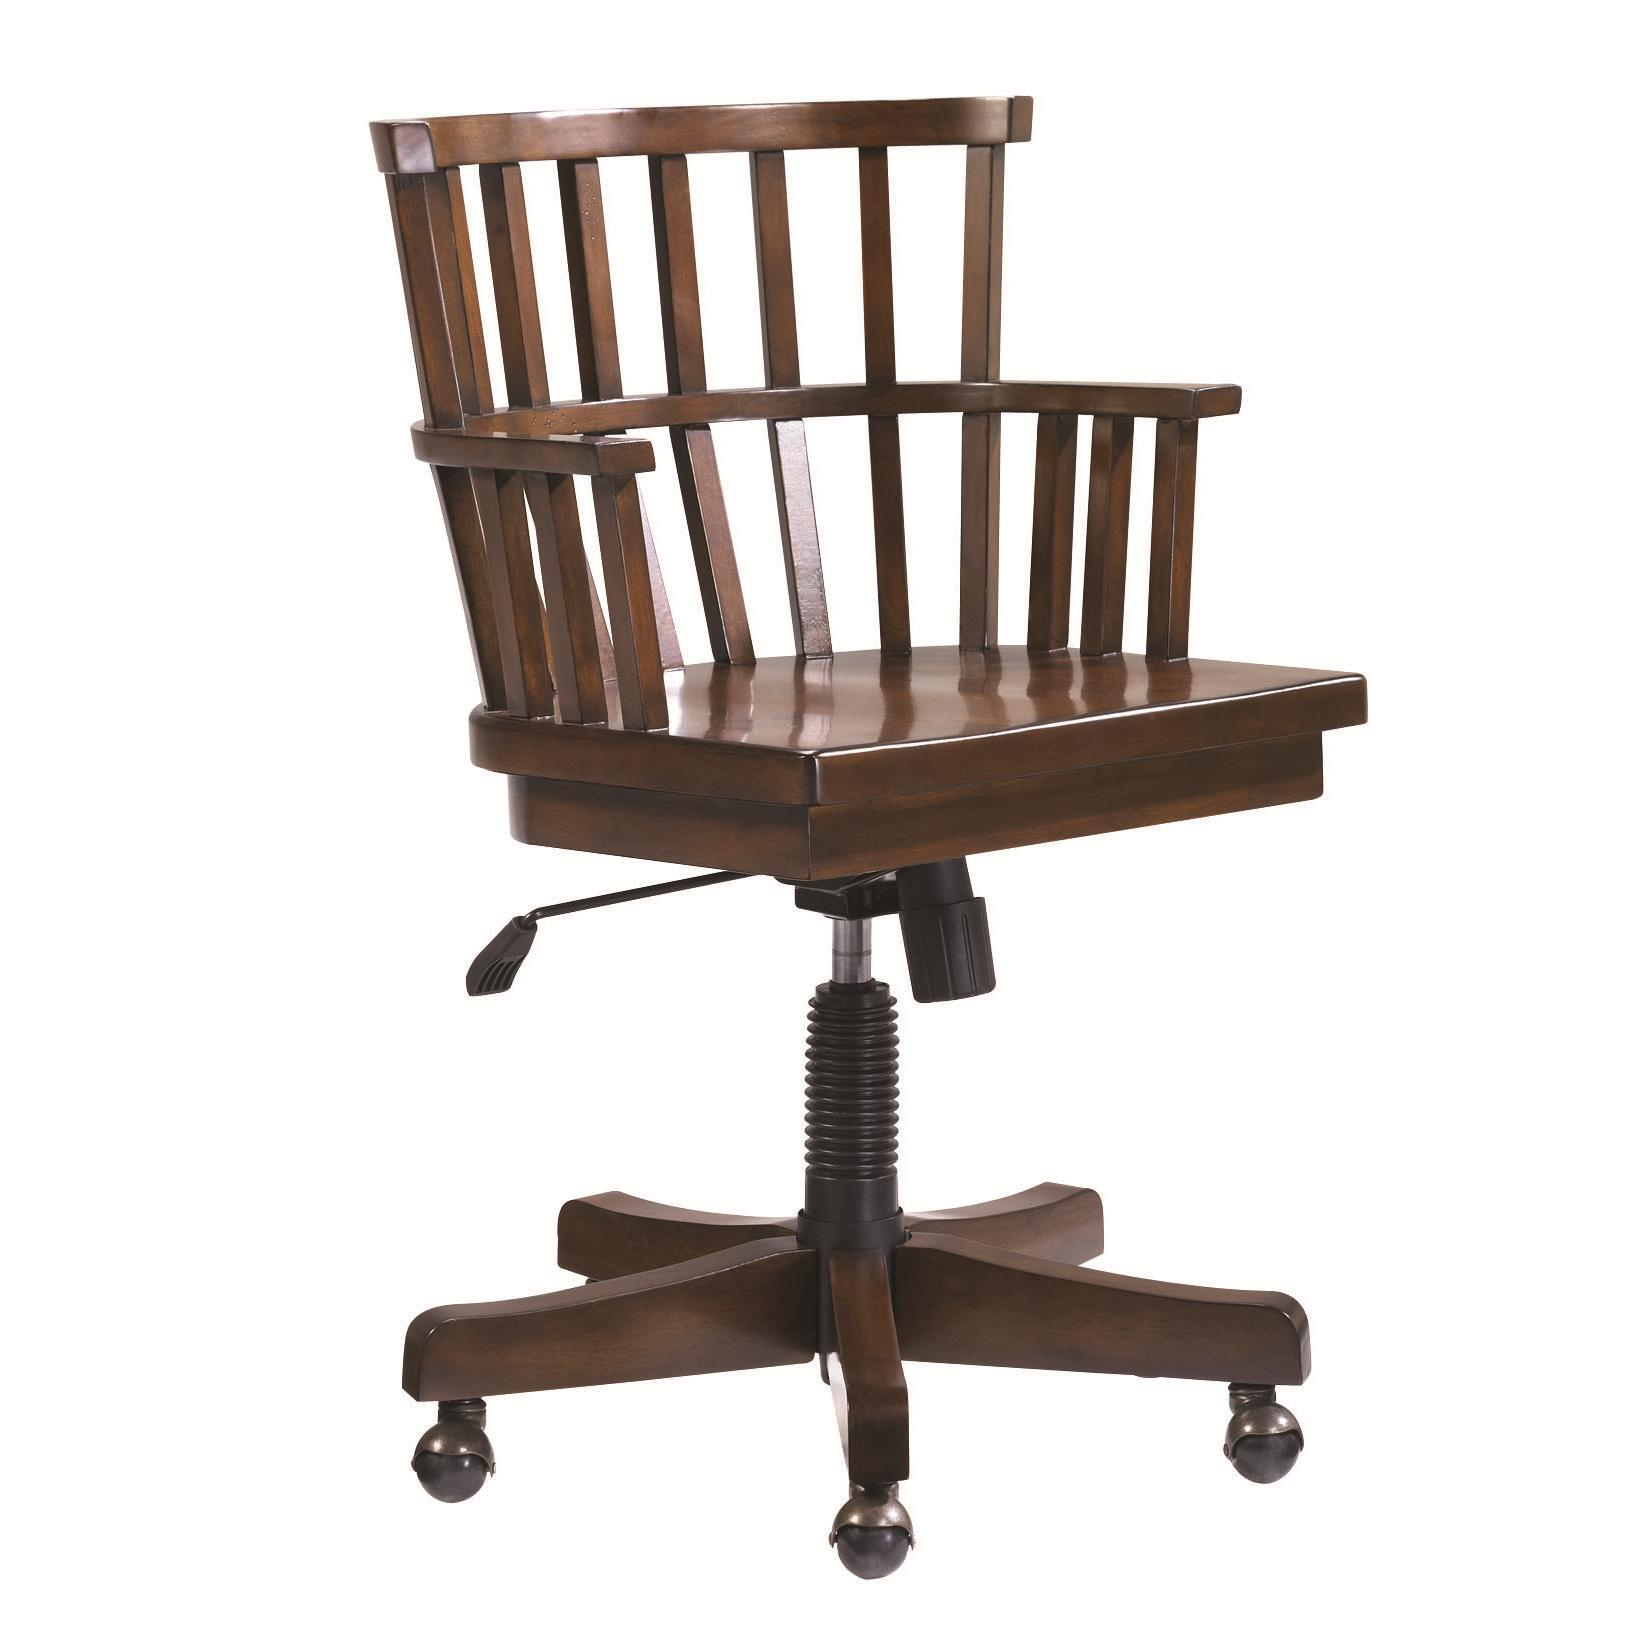 Hammary Mercantile Desk Chair - Item Number: 050-948